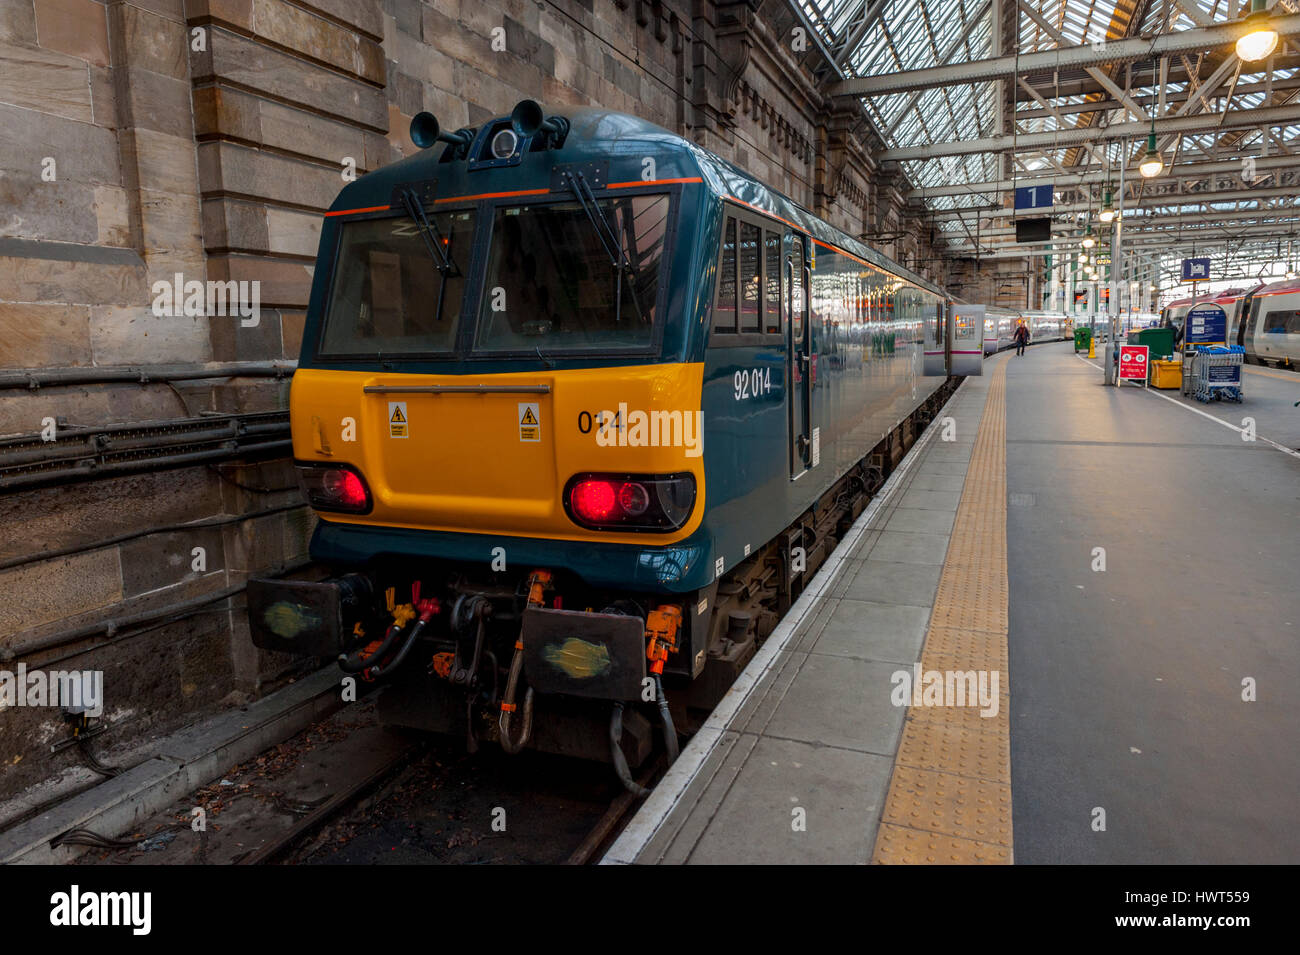 Caledonia sleeper train in Glasgow central station platform one. - Stock Image